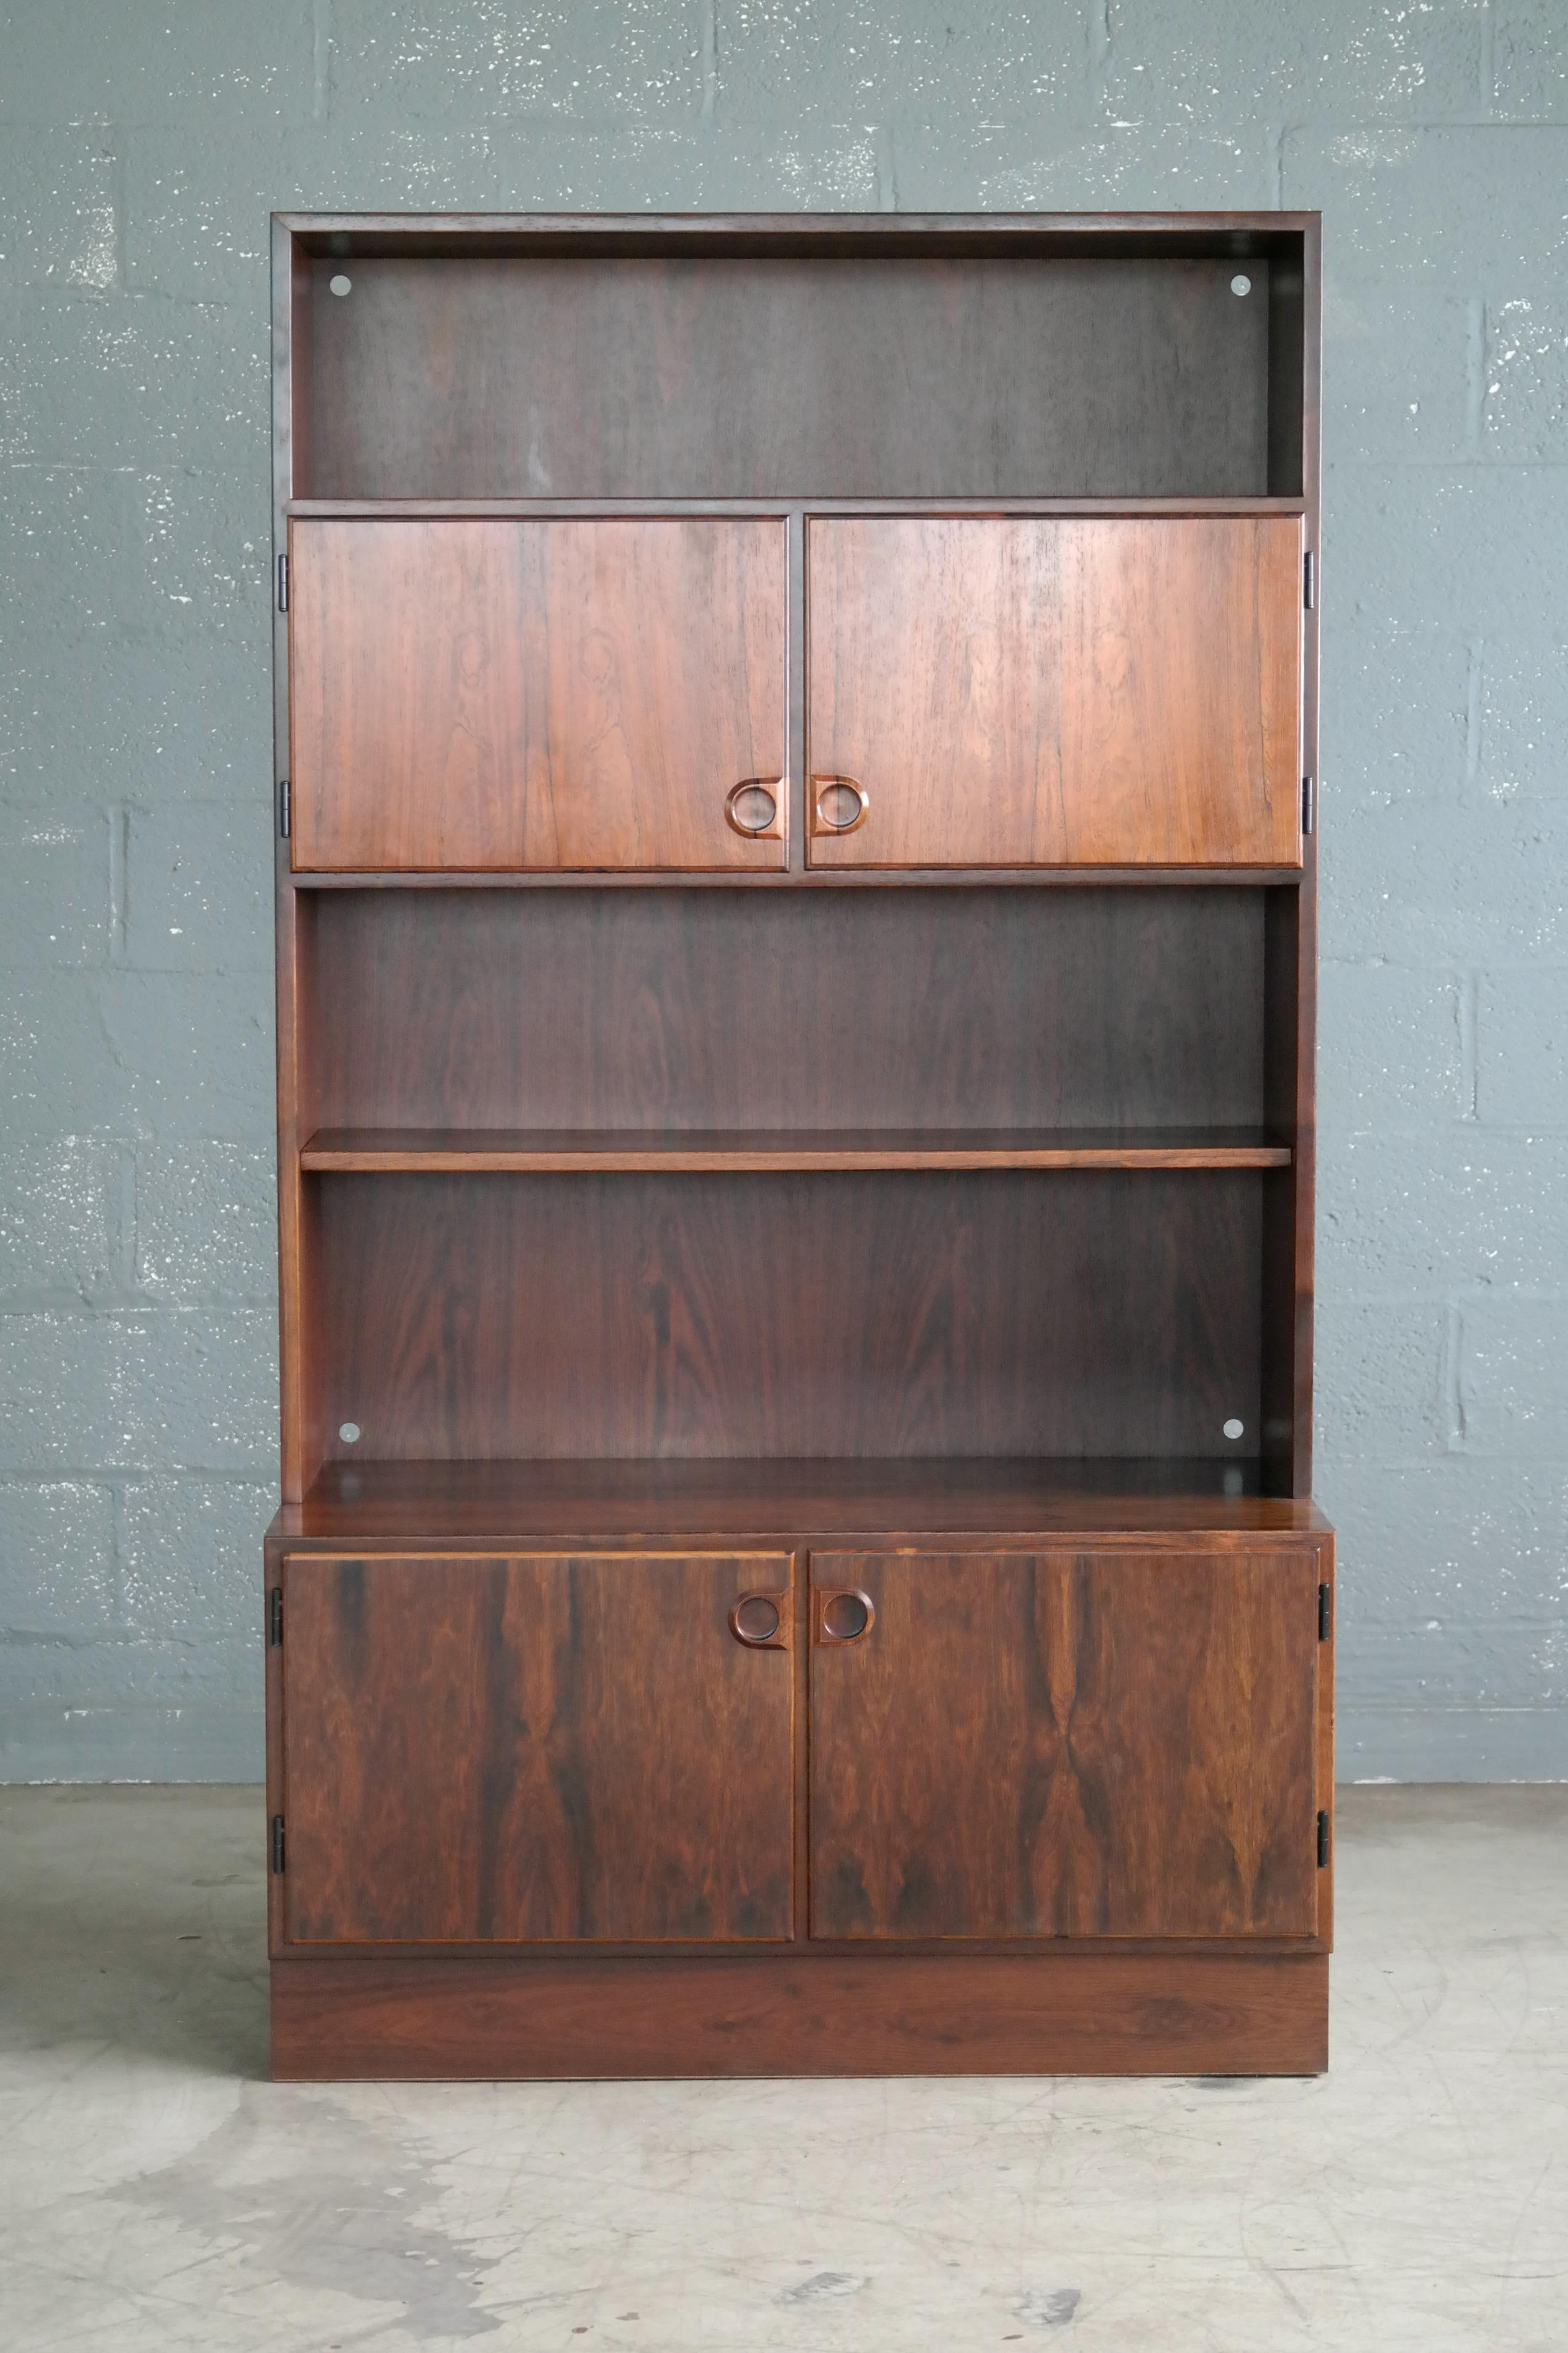 Danish Modern Bookcase Or Wall Unit In Rosewood At 1stdibs